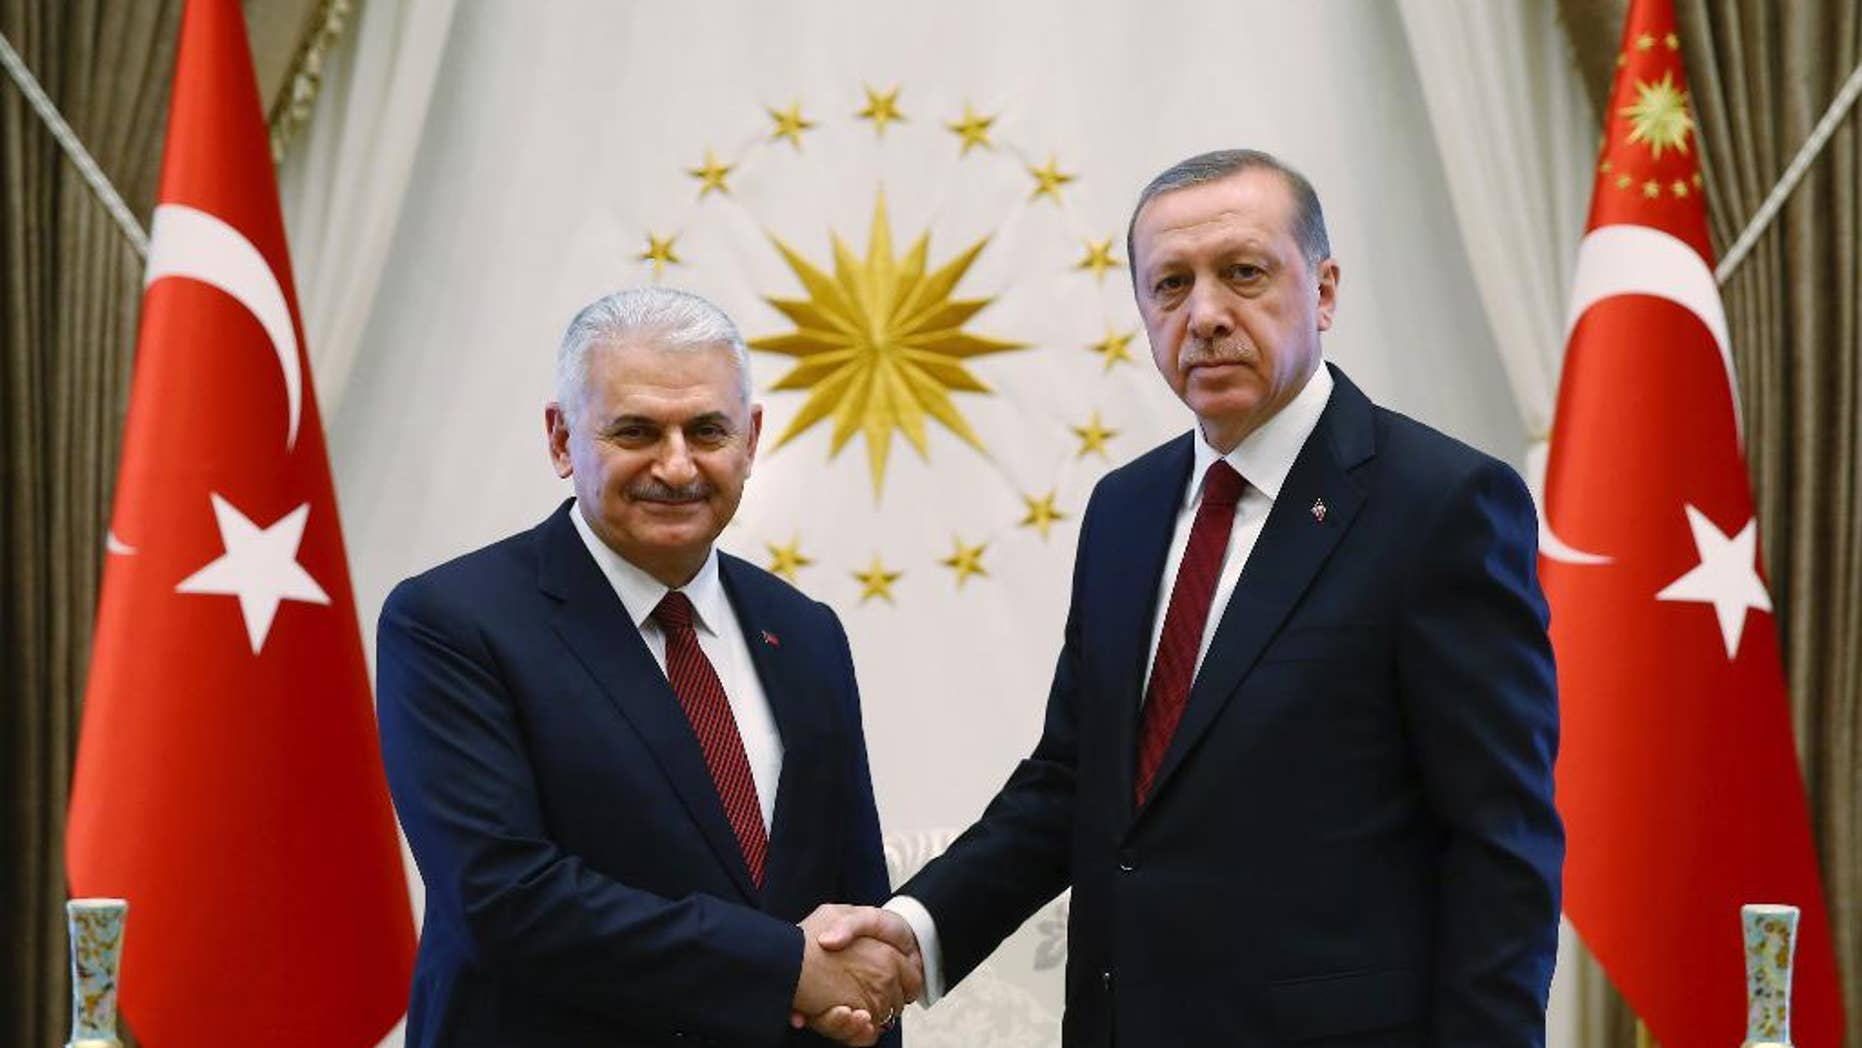 Turkey's President Recep Tayyip Erdogan, right and Turkey's incoming prime minister Binali Yildirim shake hands prior to the government's first cabinet meeting at the Presidential Palace in Ankara, Turkey, Wednesday, May 25, 2016. Erdogan had approved the new government formed by Yildirim, one of his most trusted allies, who immediately asserted the intention to institute constitutional reforms that would expand the powers of the presidency. (Presidential Press Service/Pool Photo via AP)